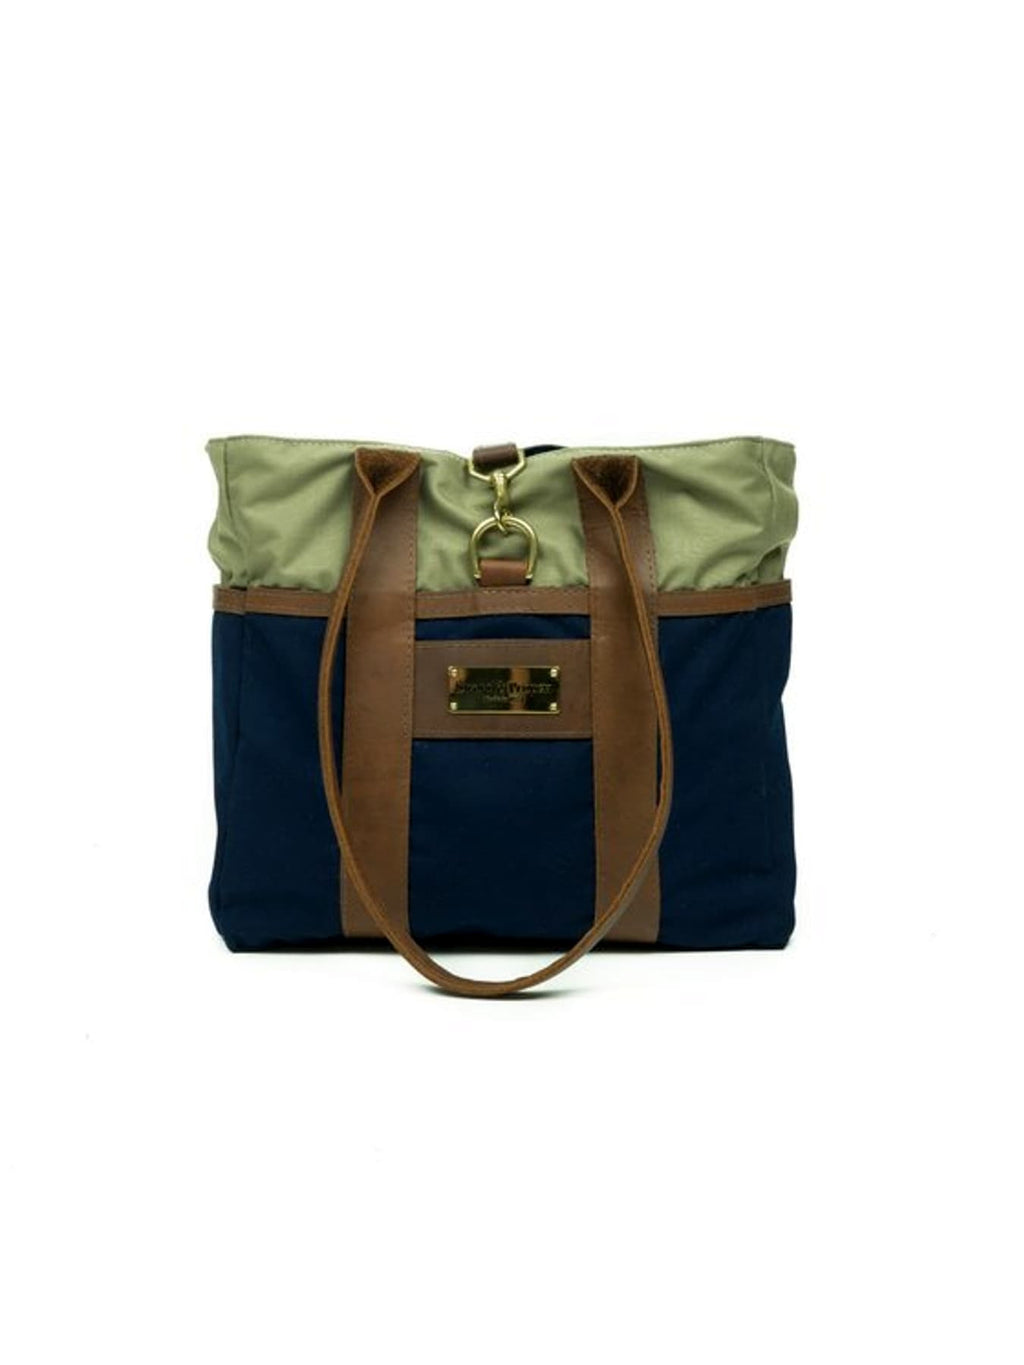 Blue Water Resistant Canvas and Leather Tote Bag